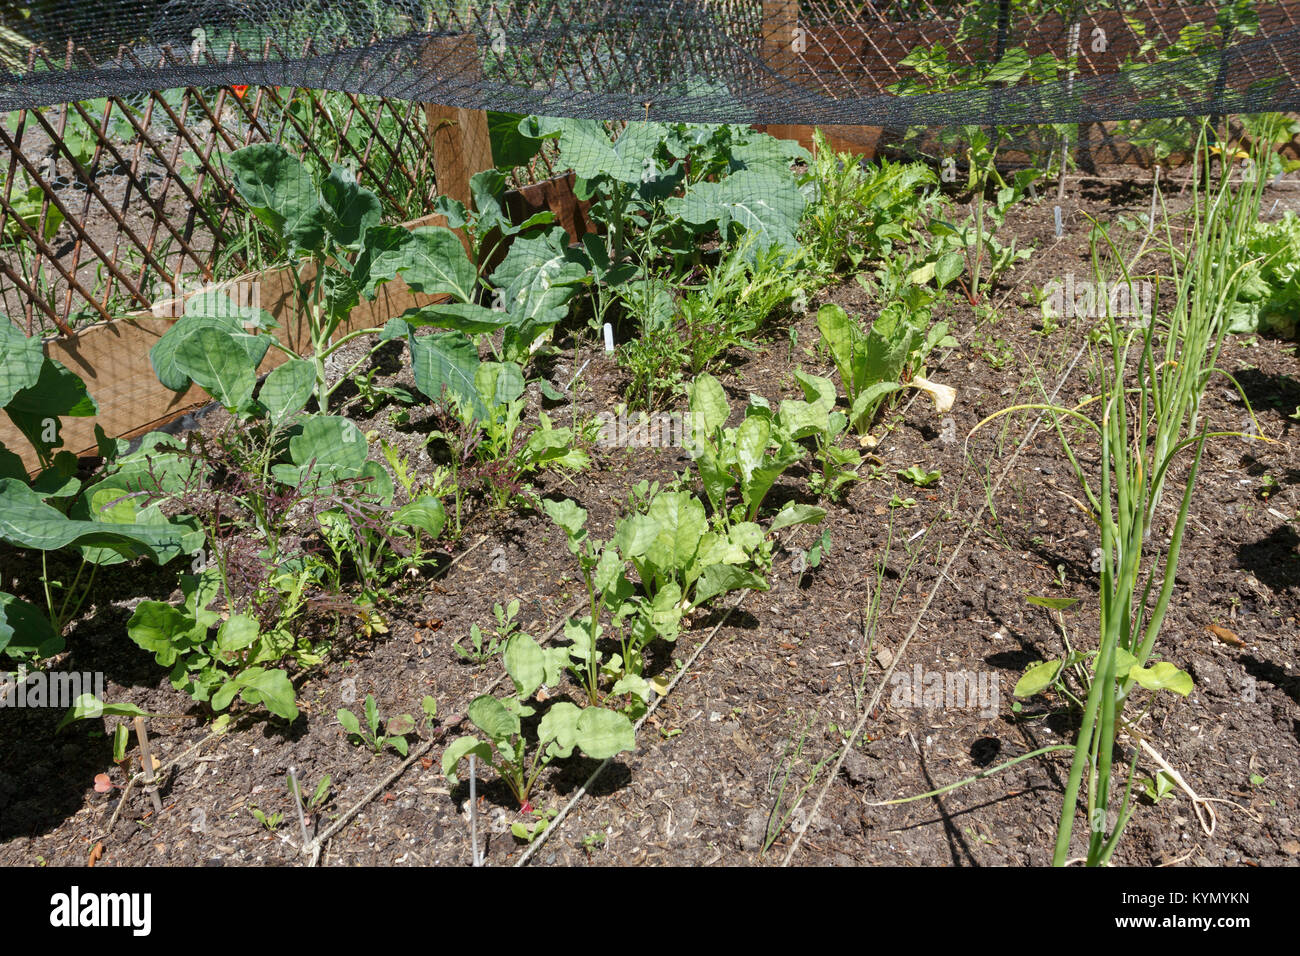 Garden vegetable plot with spring onions, radishes and salad growing, East Sussex, UK - Stock Image